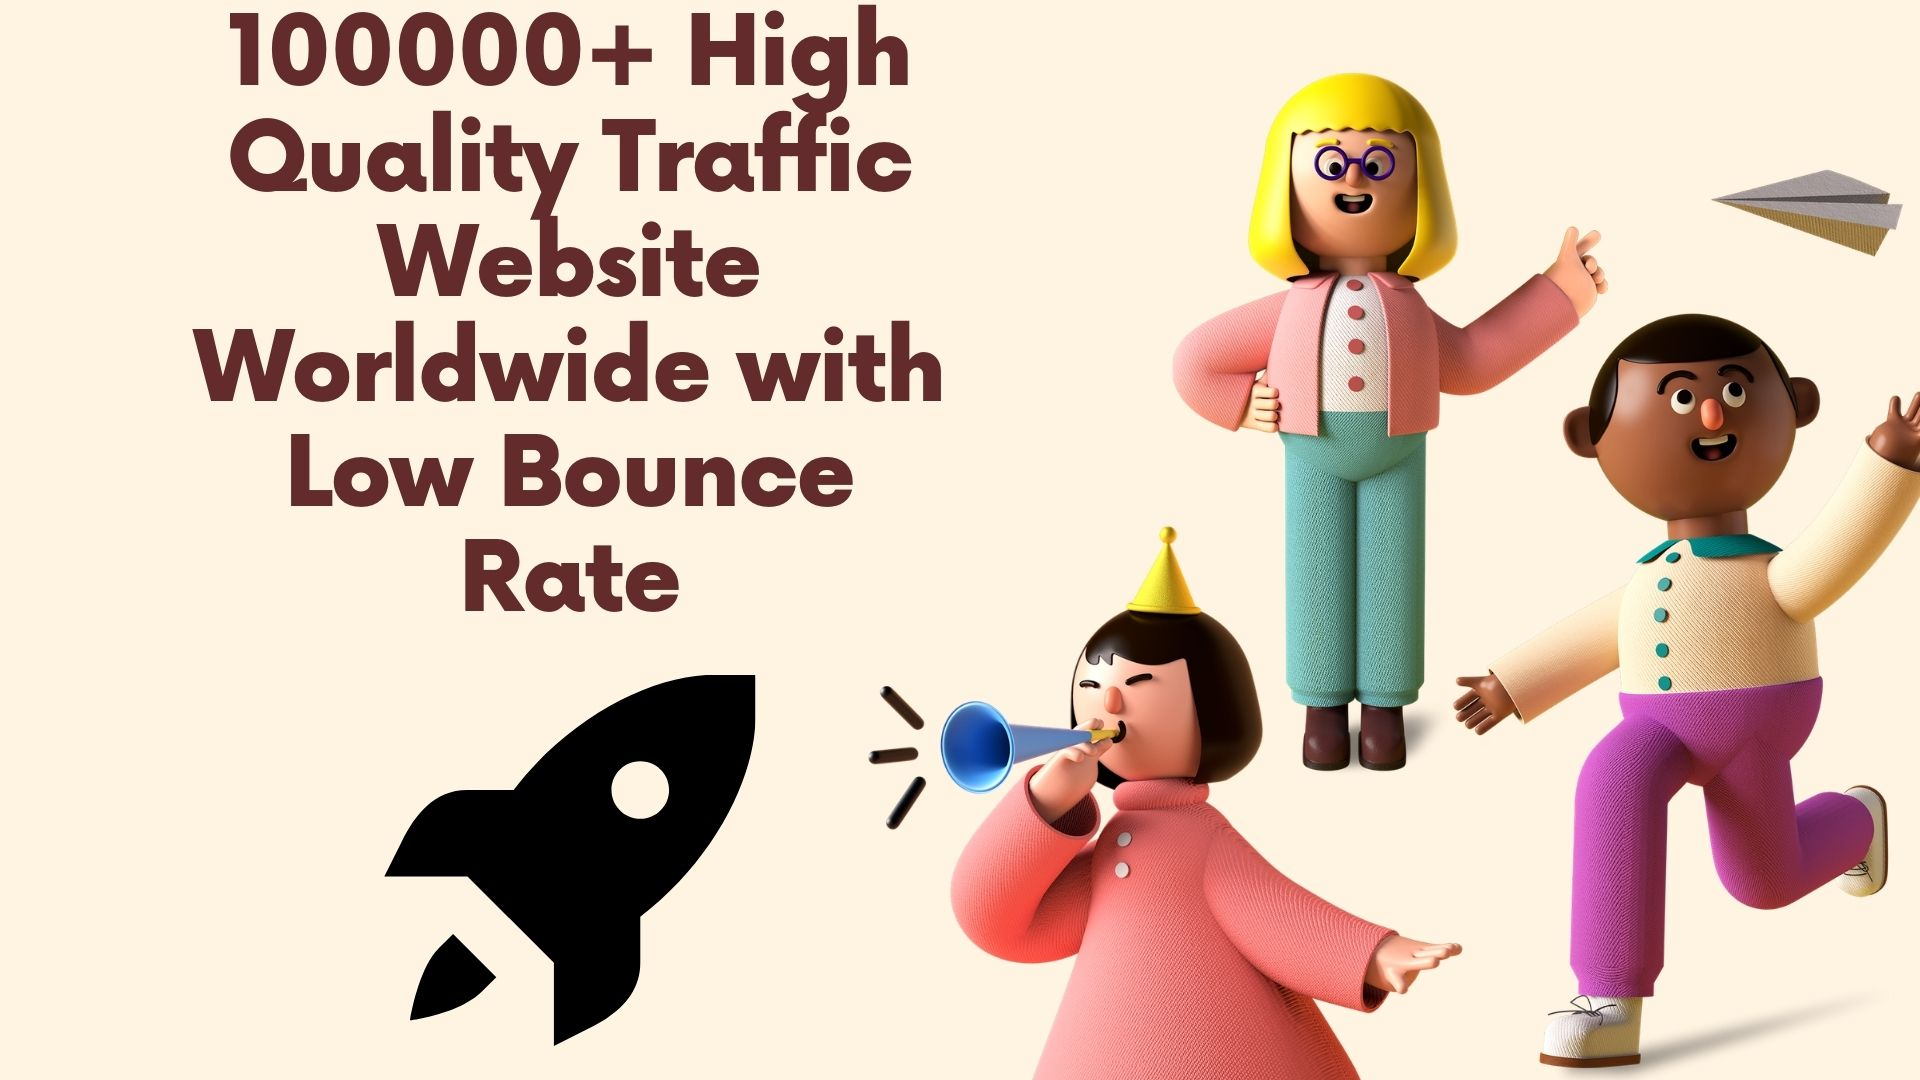 100000+ High Quality Traffic Website Worldwide with Low Bounce Rate